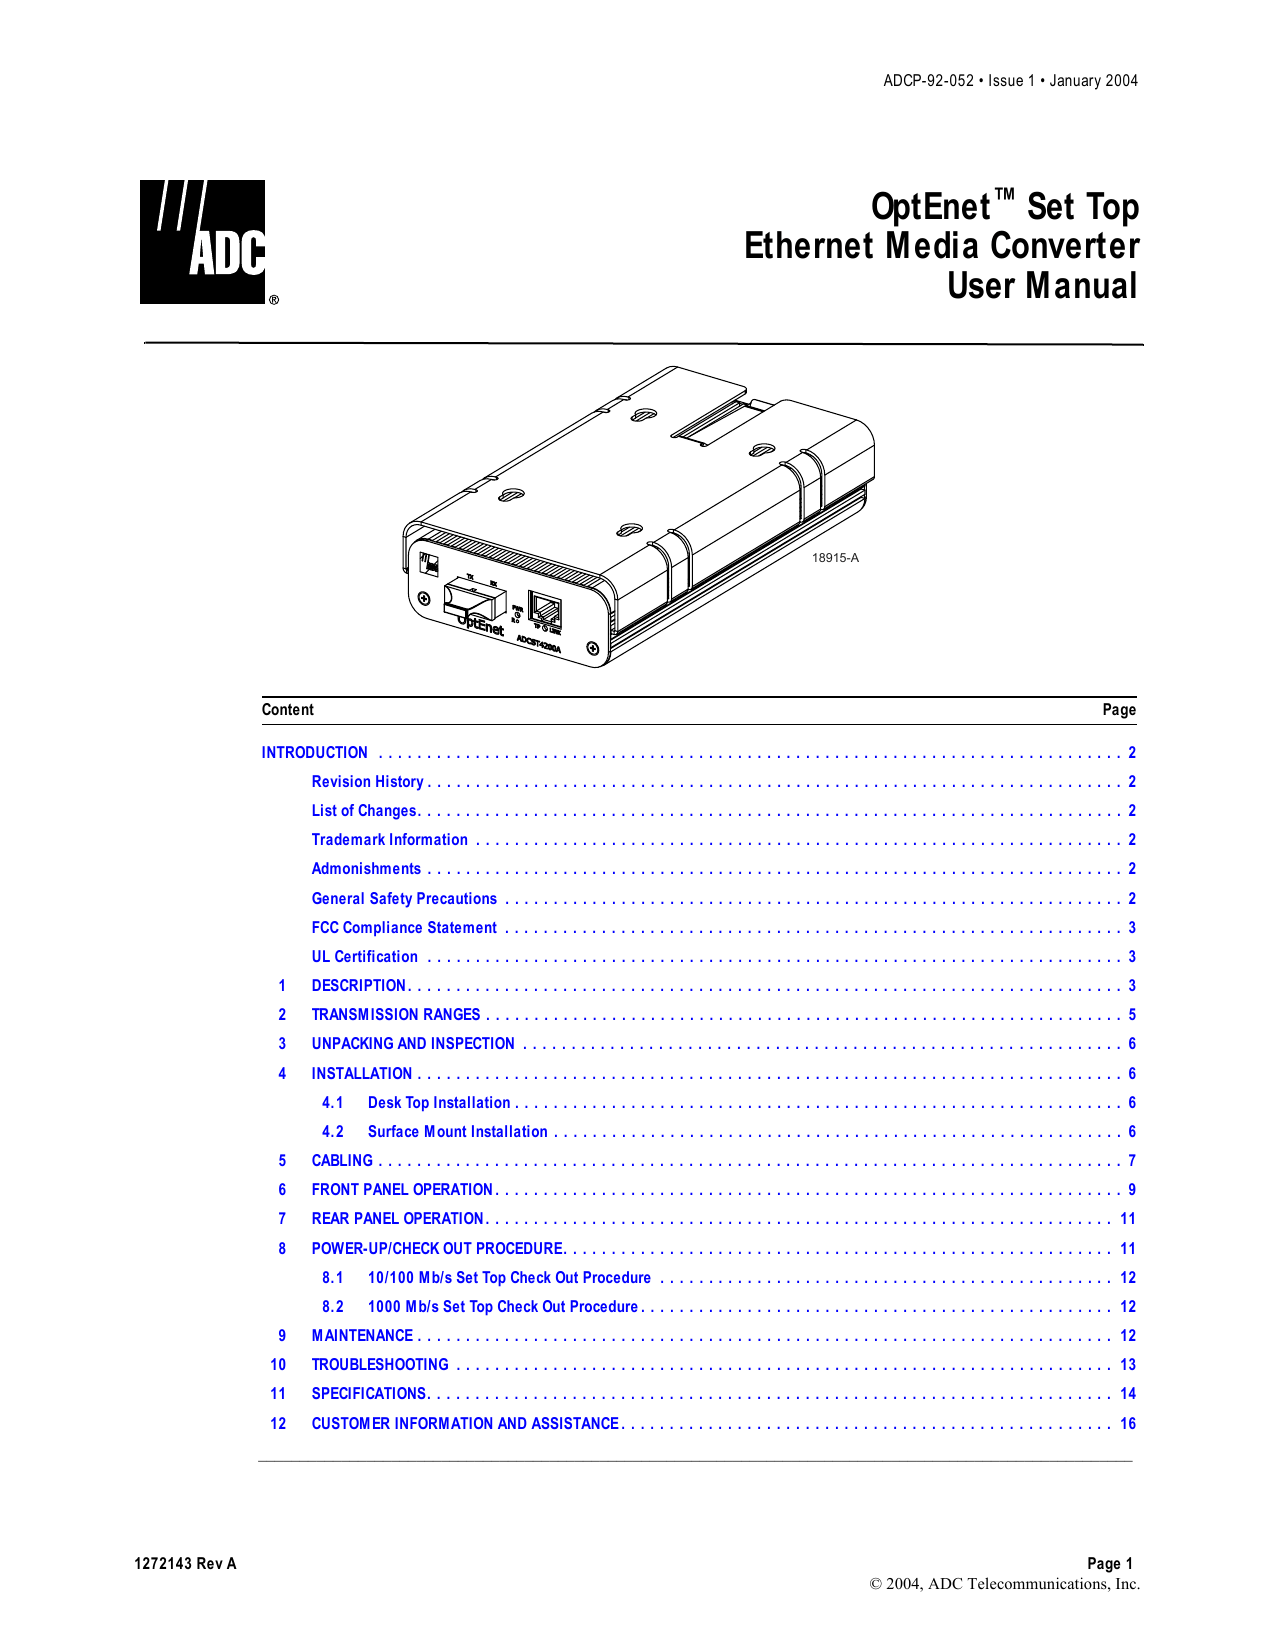 hight resolution of rj45 wiring diagram 100mb schematic diagram 10 100mb rj45 diagram source ethernet 10 100